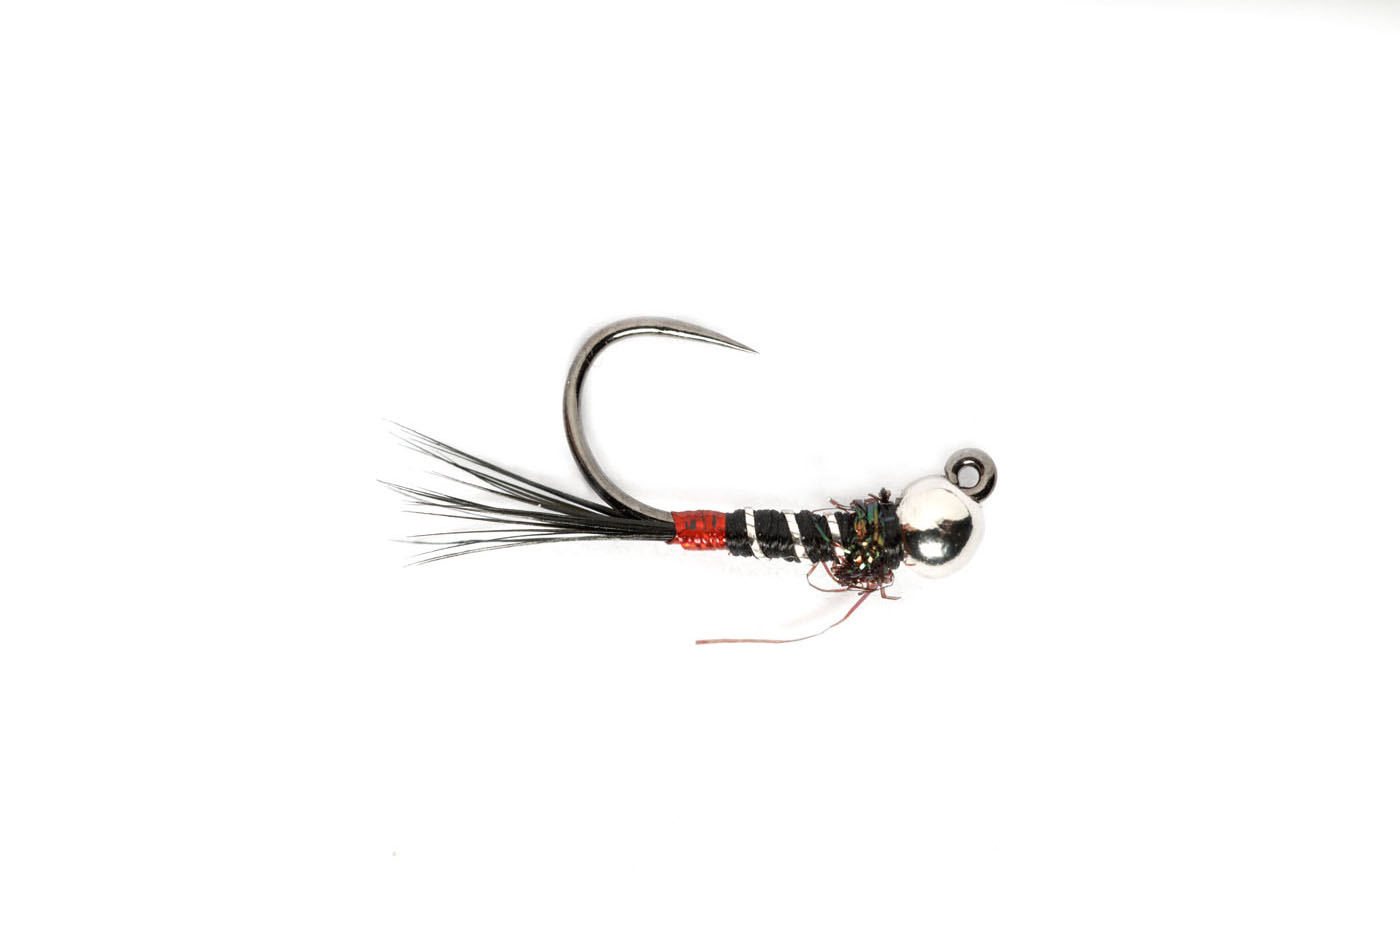 The French Nymph Jig Barbless